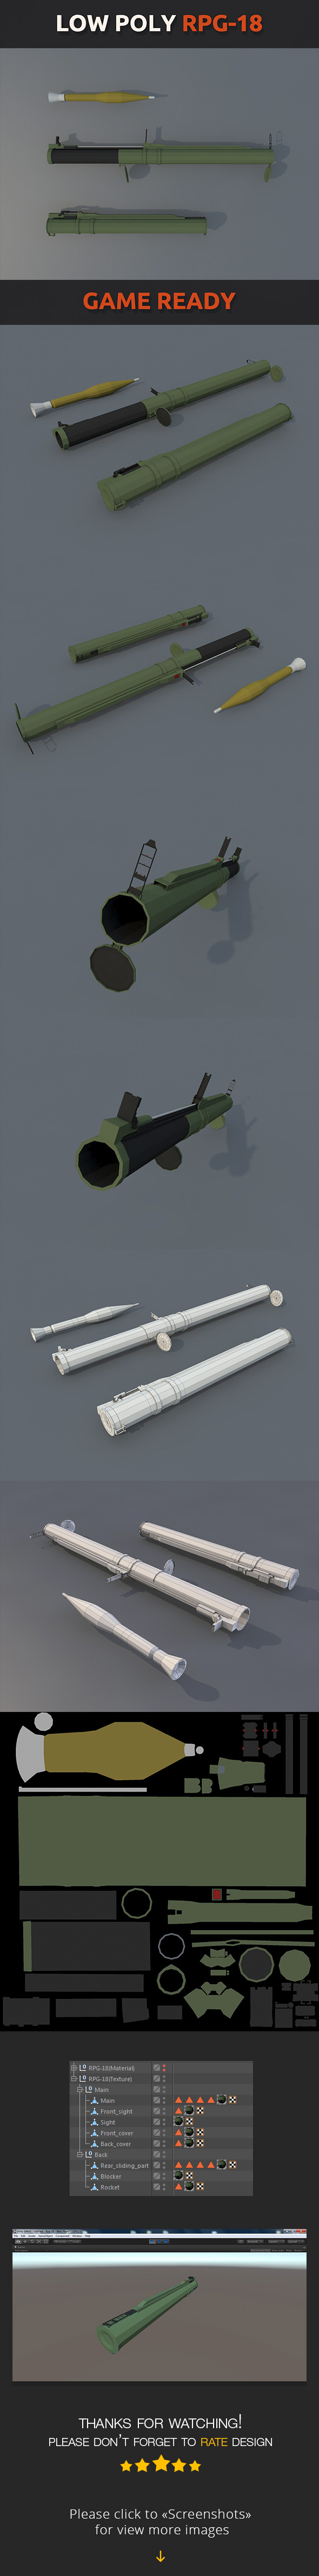 Low Poly RPG-18 - 3DOcean Item for Sale